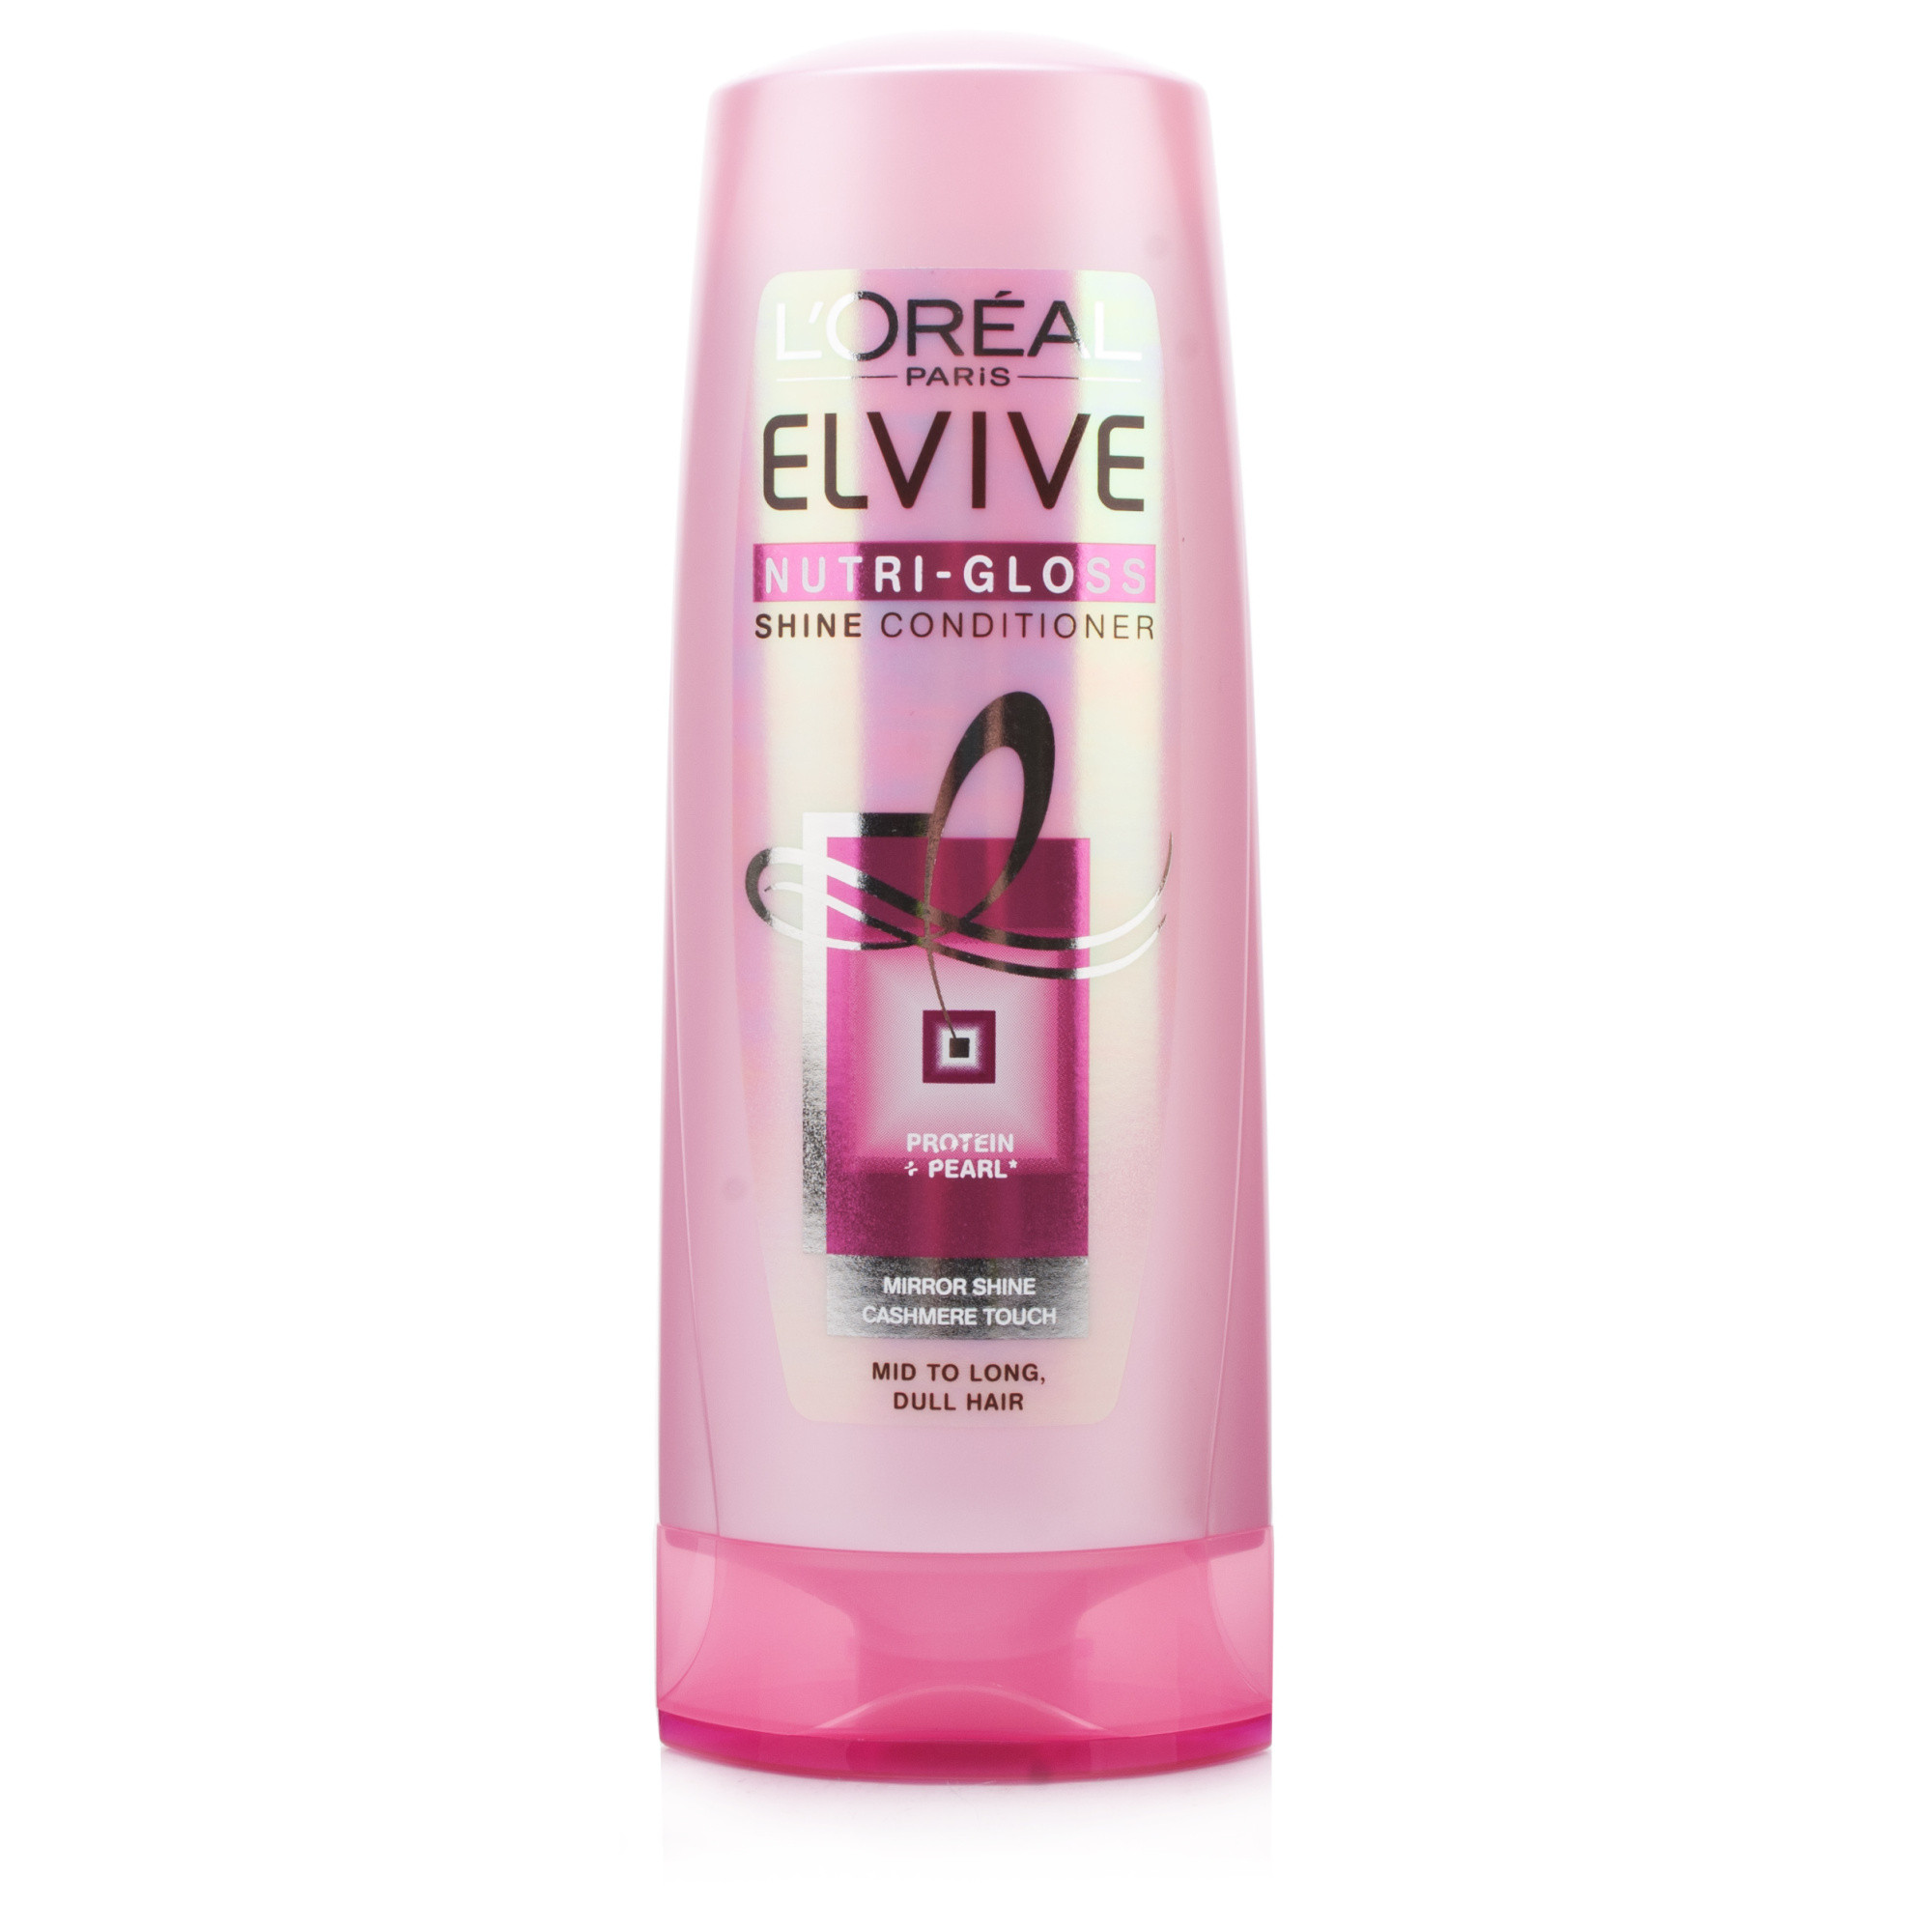 L'Oreal Elvive Nutri-Gloss Shine Conditioner